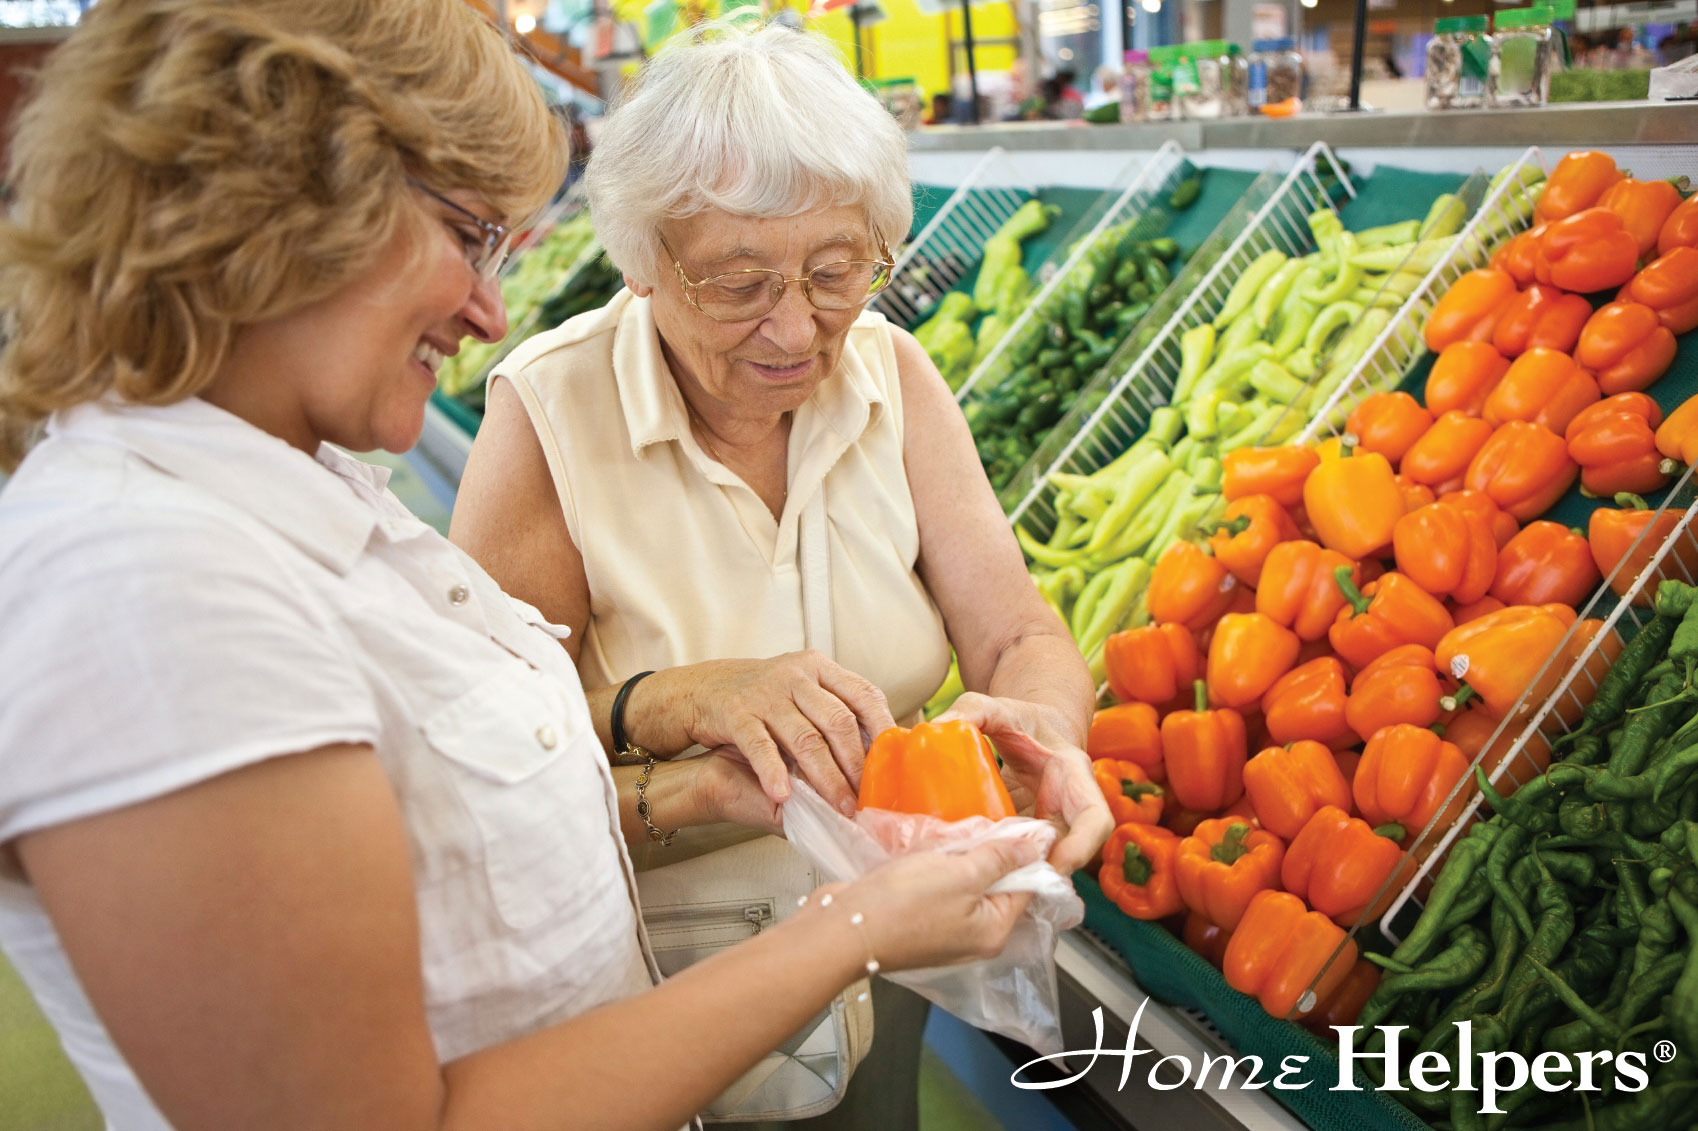 Home Helpers caregiver and client picking out produce